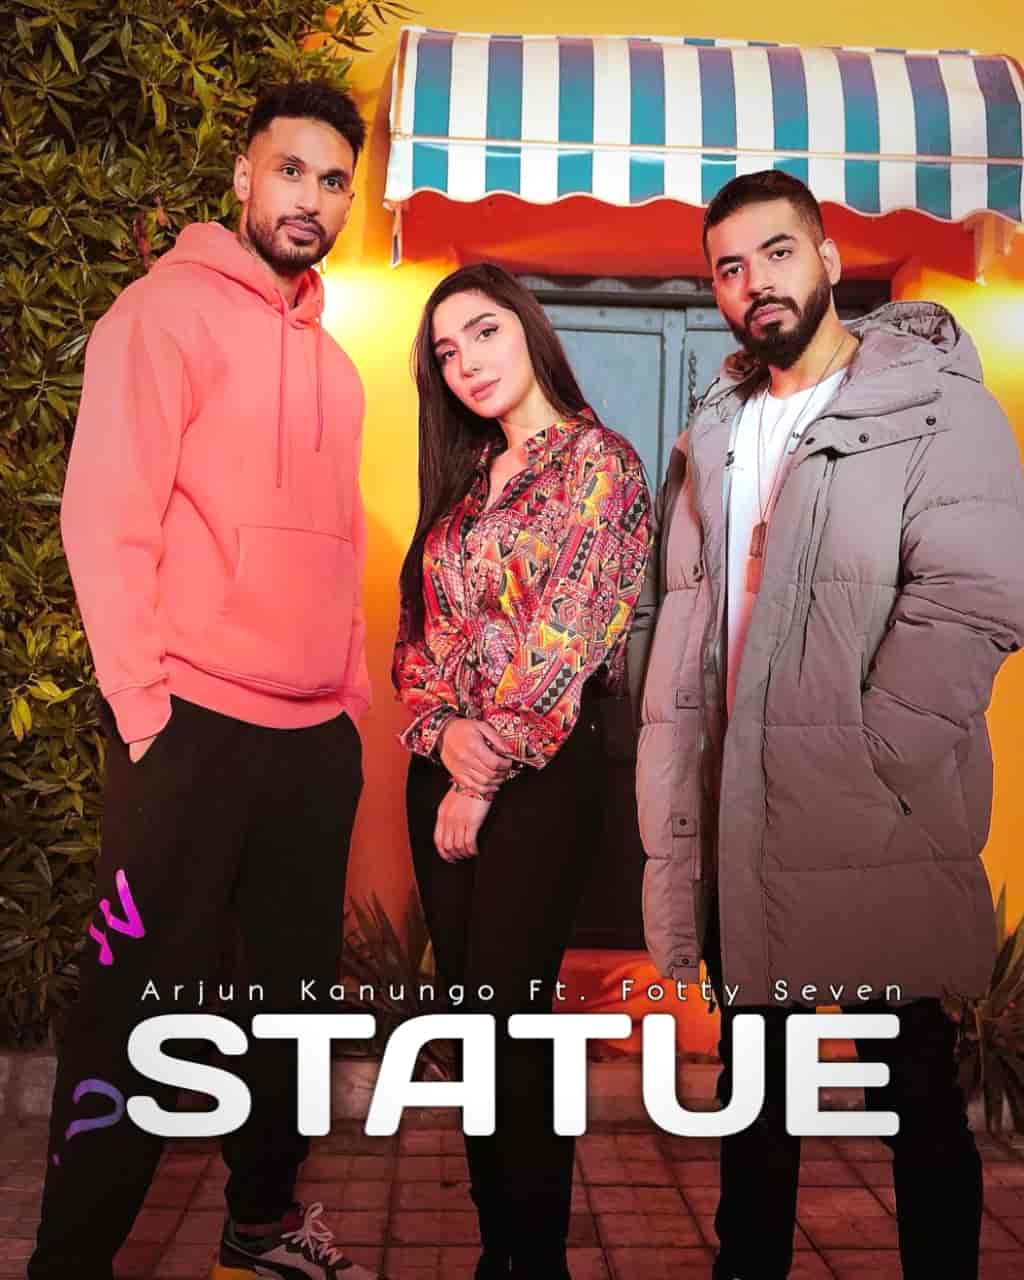 Statue Hindi Rap Song Image Features Arjun Kanungo and Fotty Seven